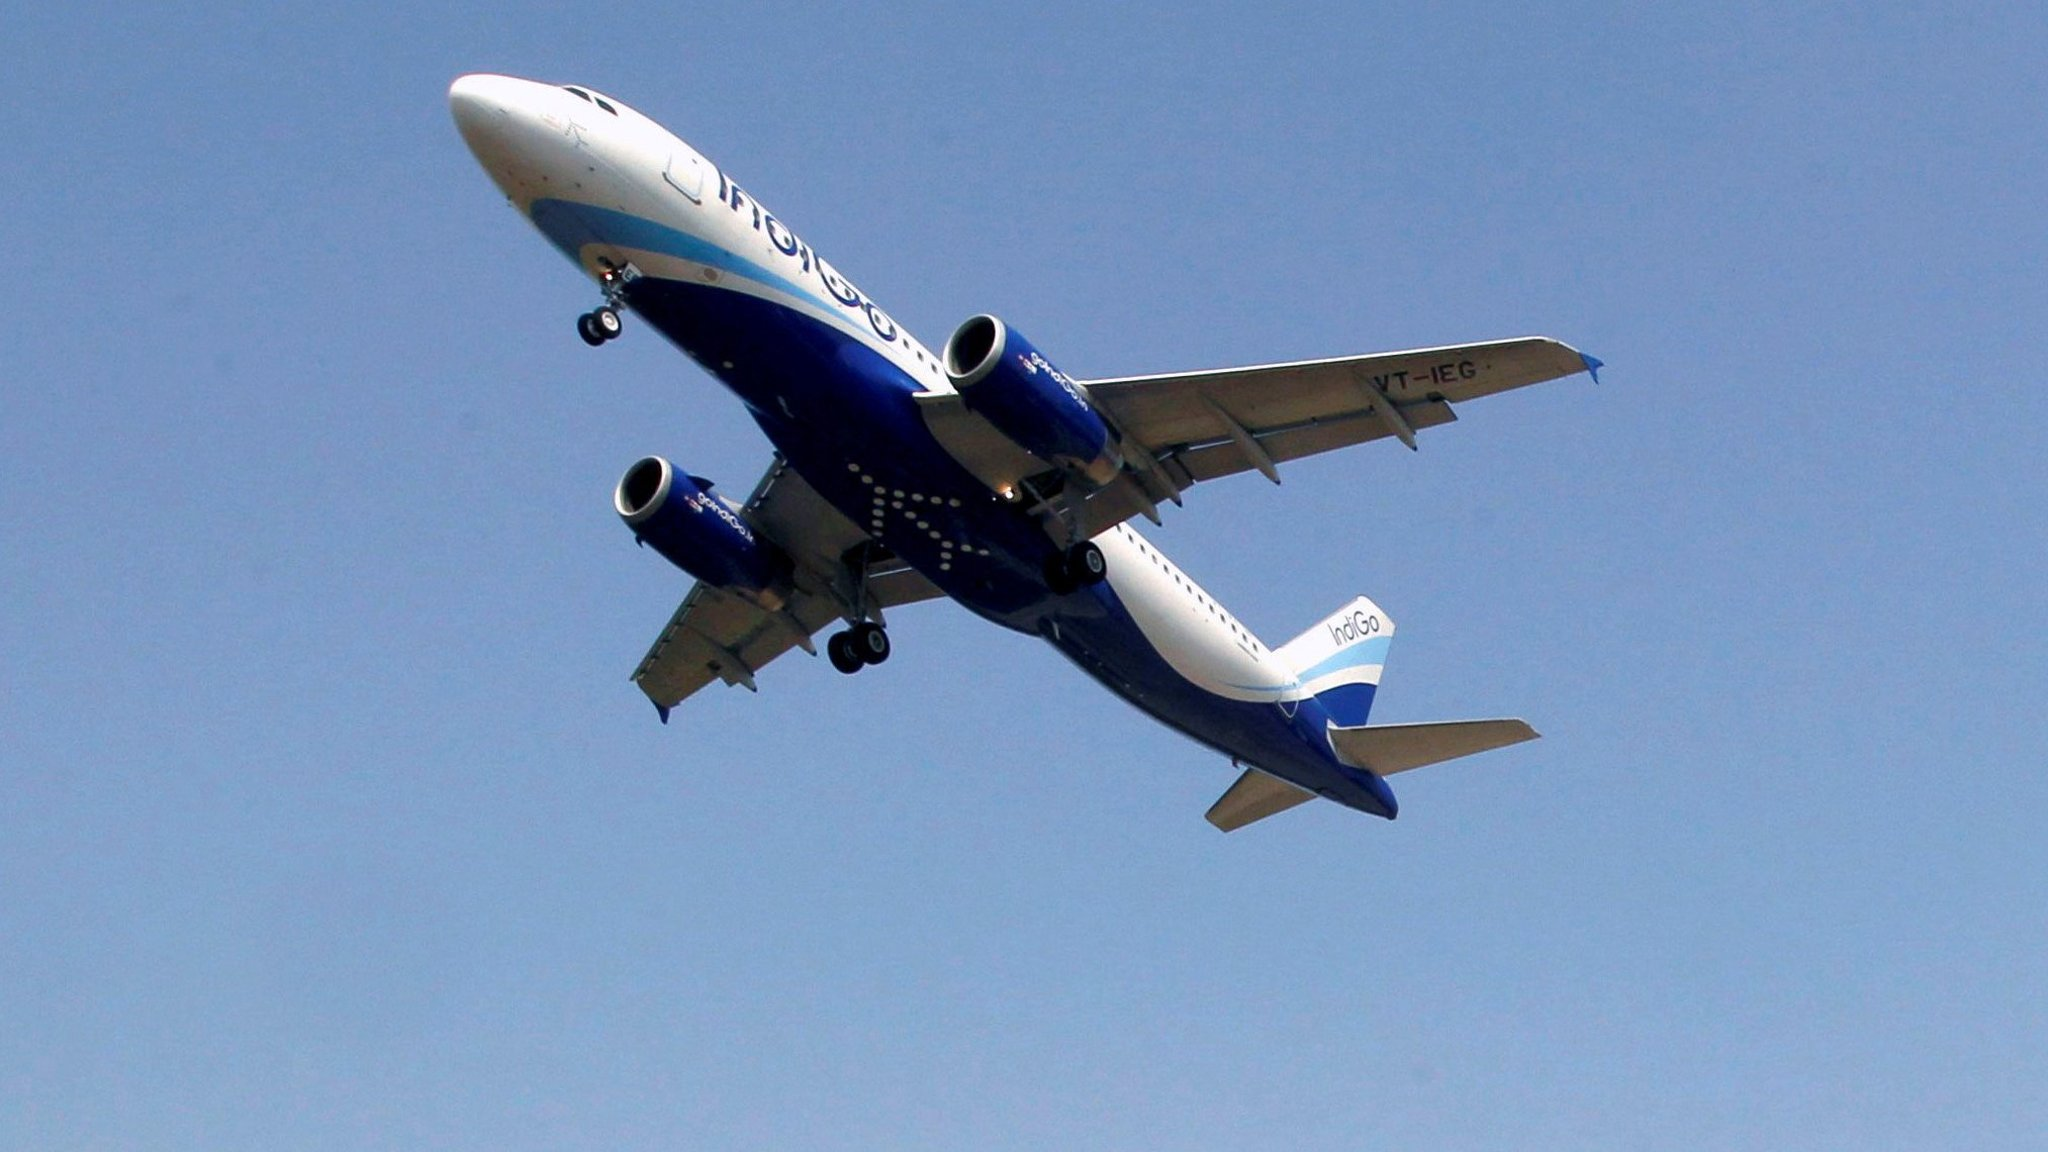 IndiGo's major shareholders in tussle for control of airline